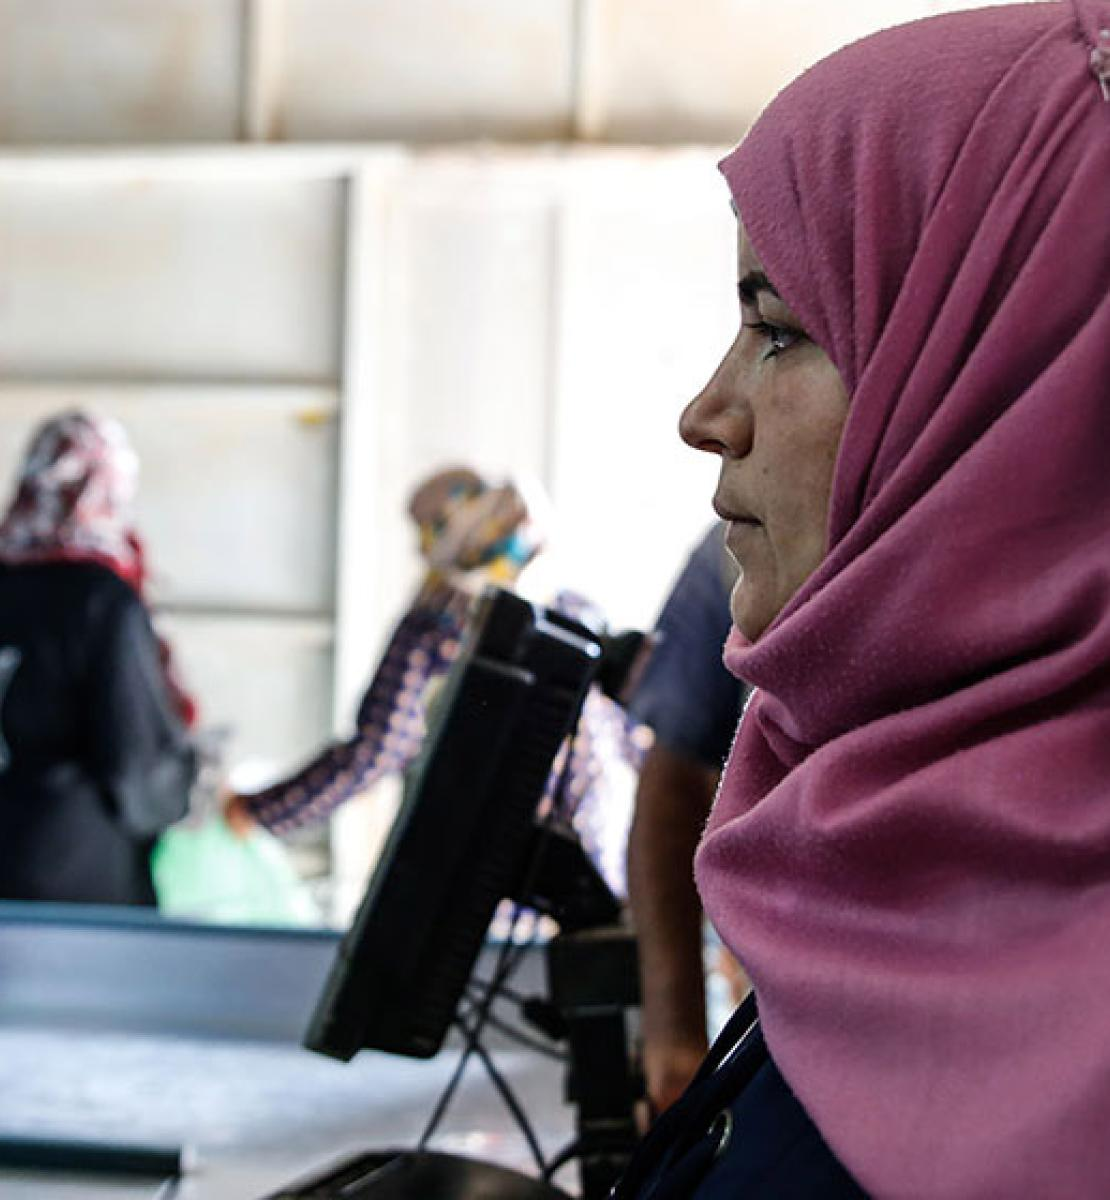 A UN Women beneficiary gets her iris scanned, allowing her to buy groceries at the Sameh Mall Supermarket in Azraq refugee camp, Jordan.